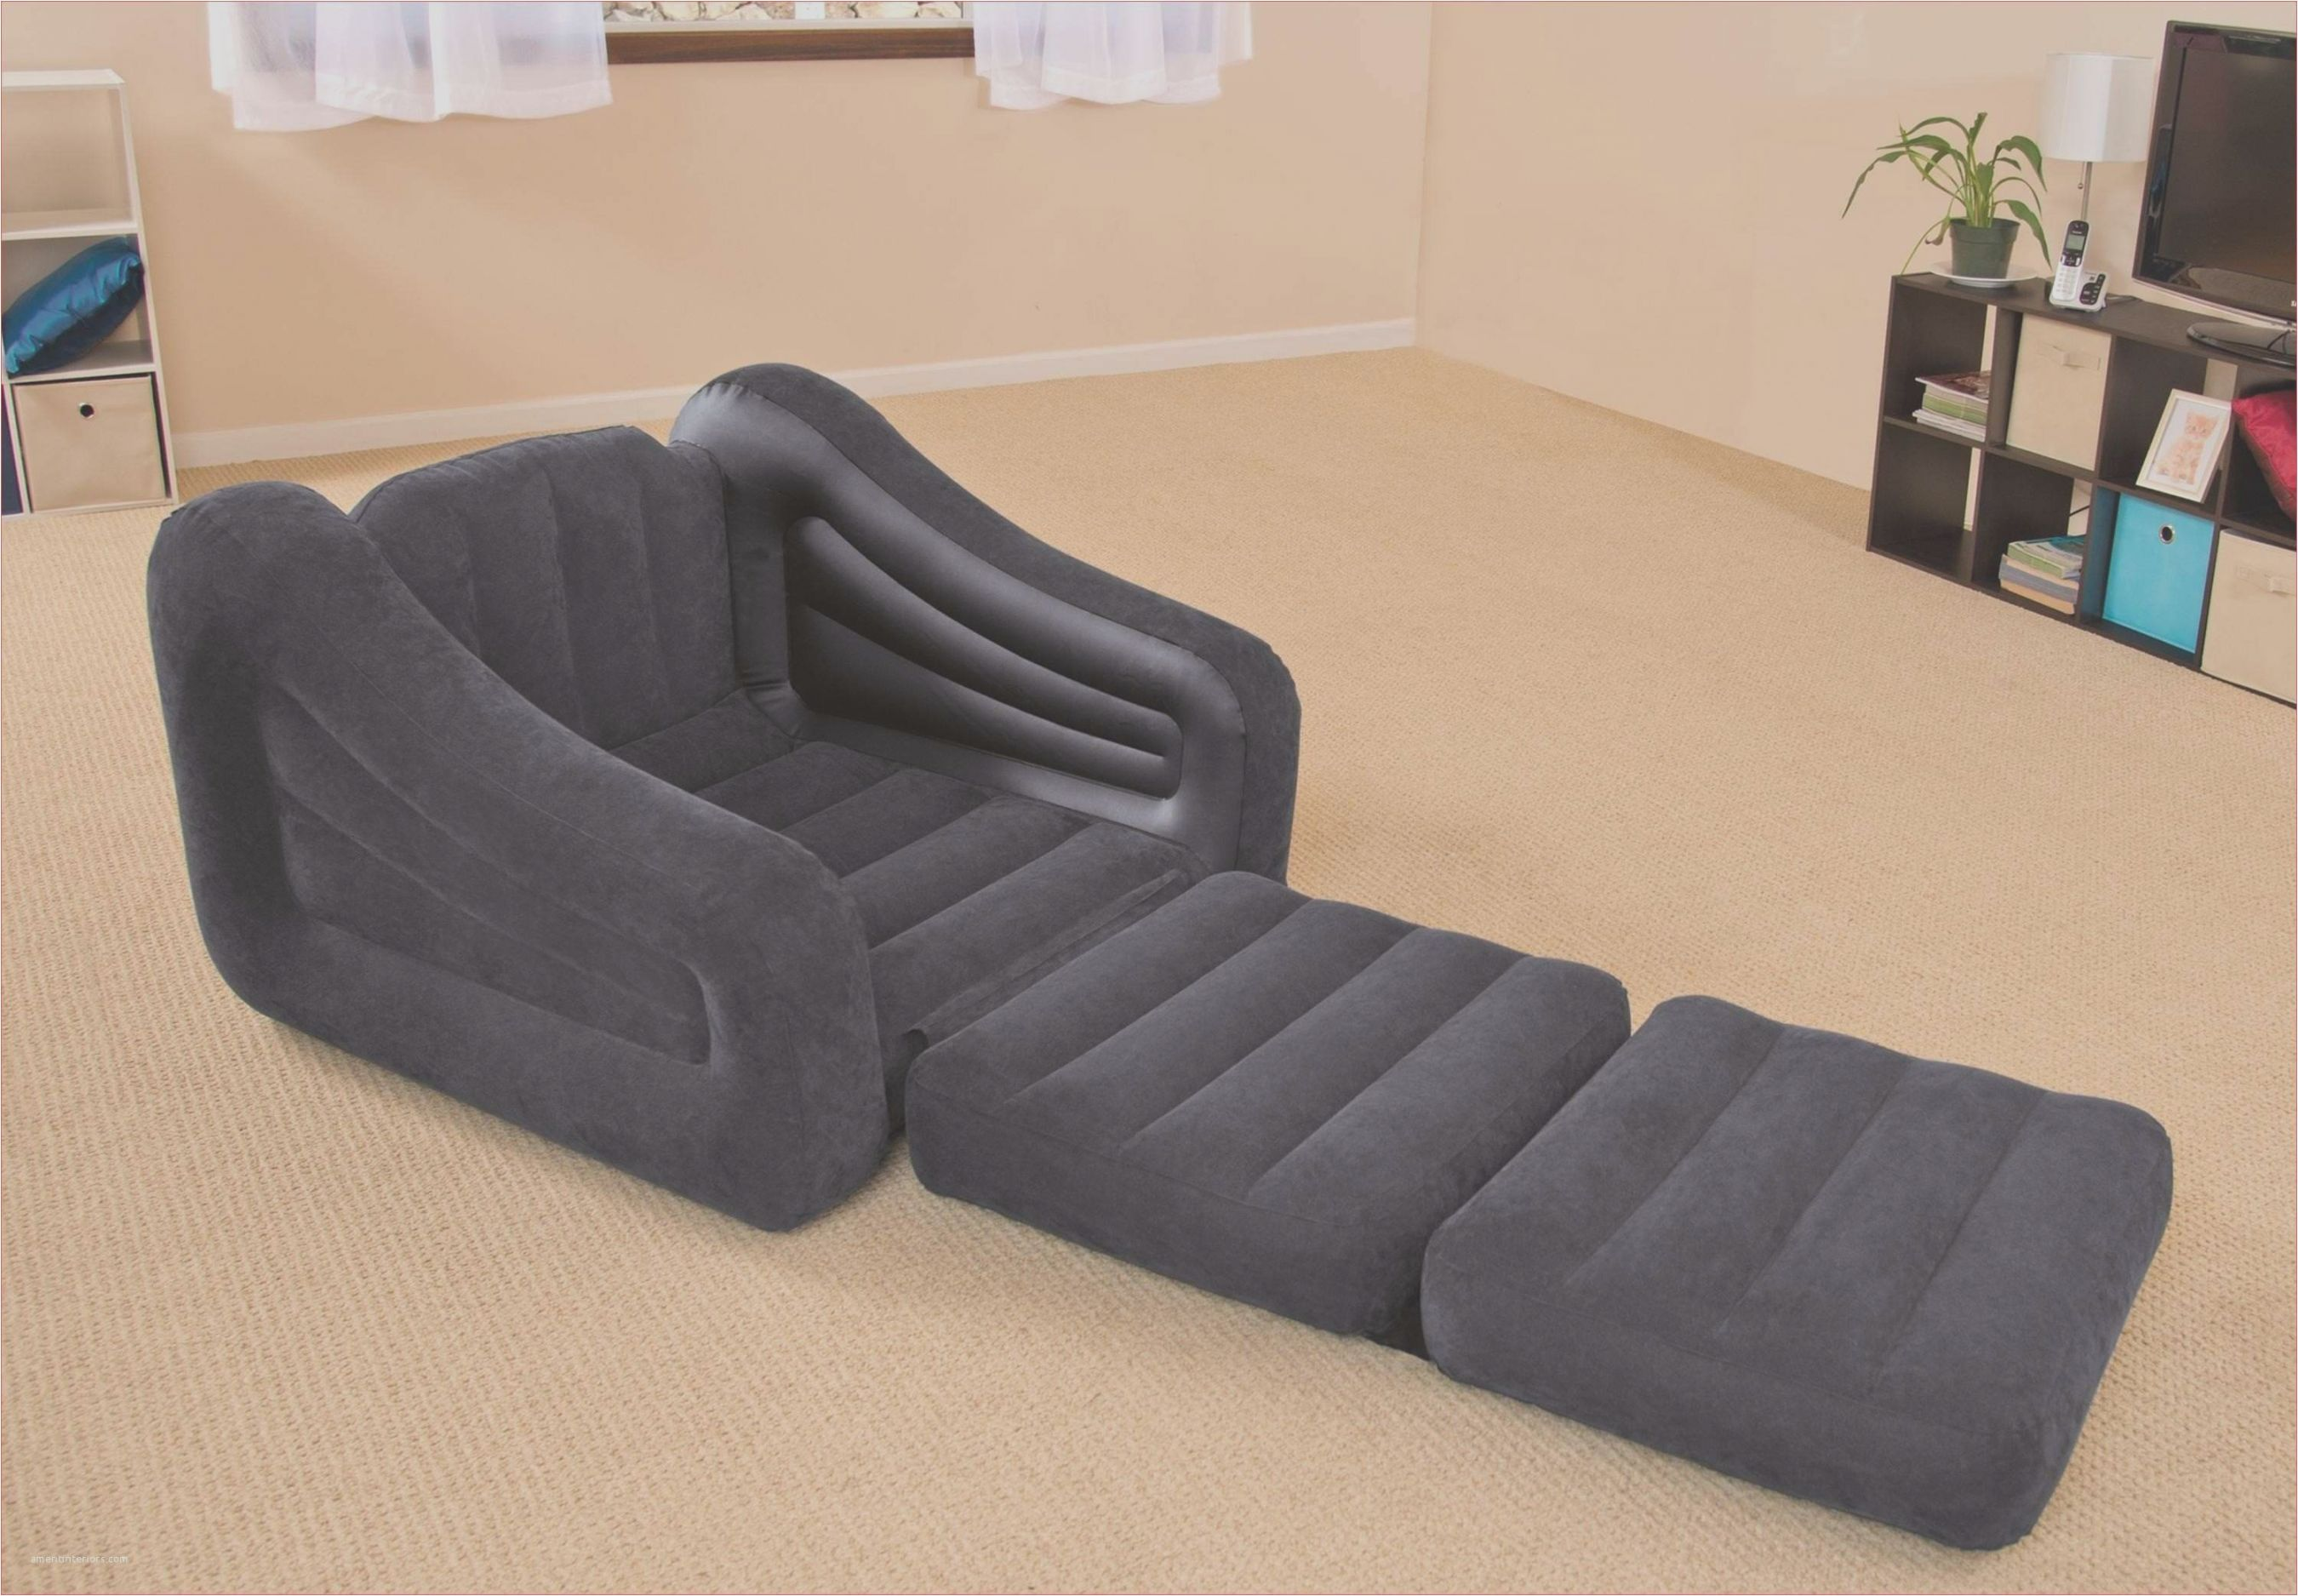 Patio daybed best furniture deals couch discount luxus patio furniture daybed by jerry carter for